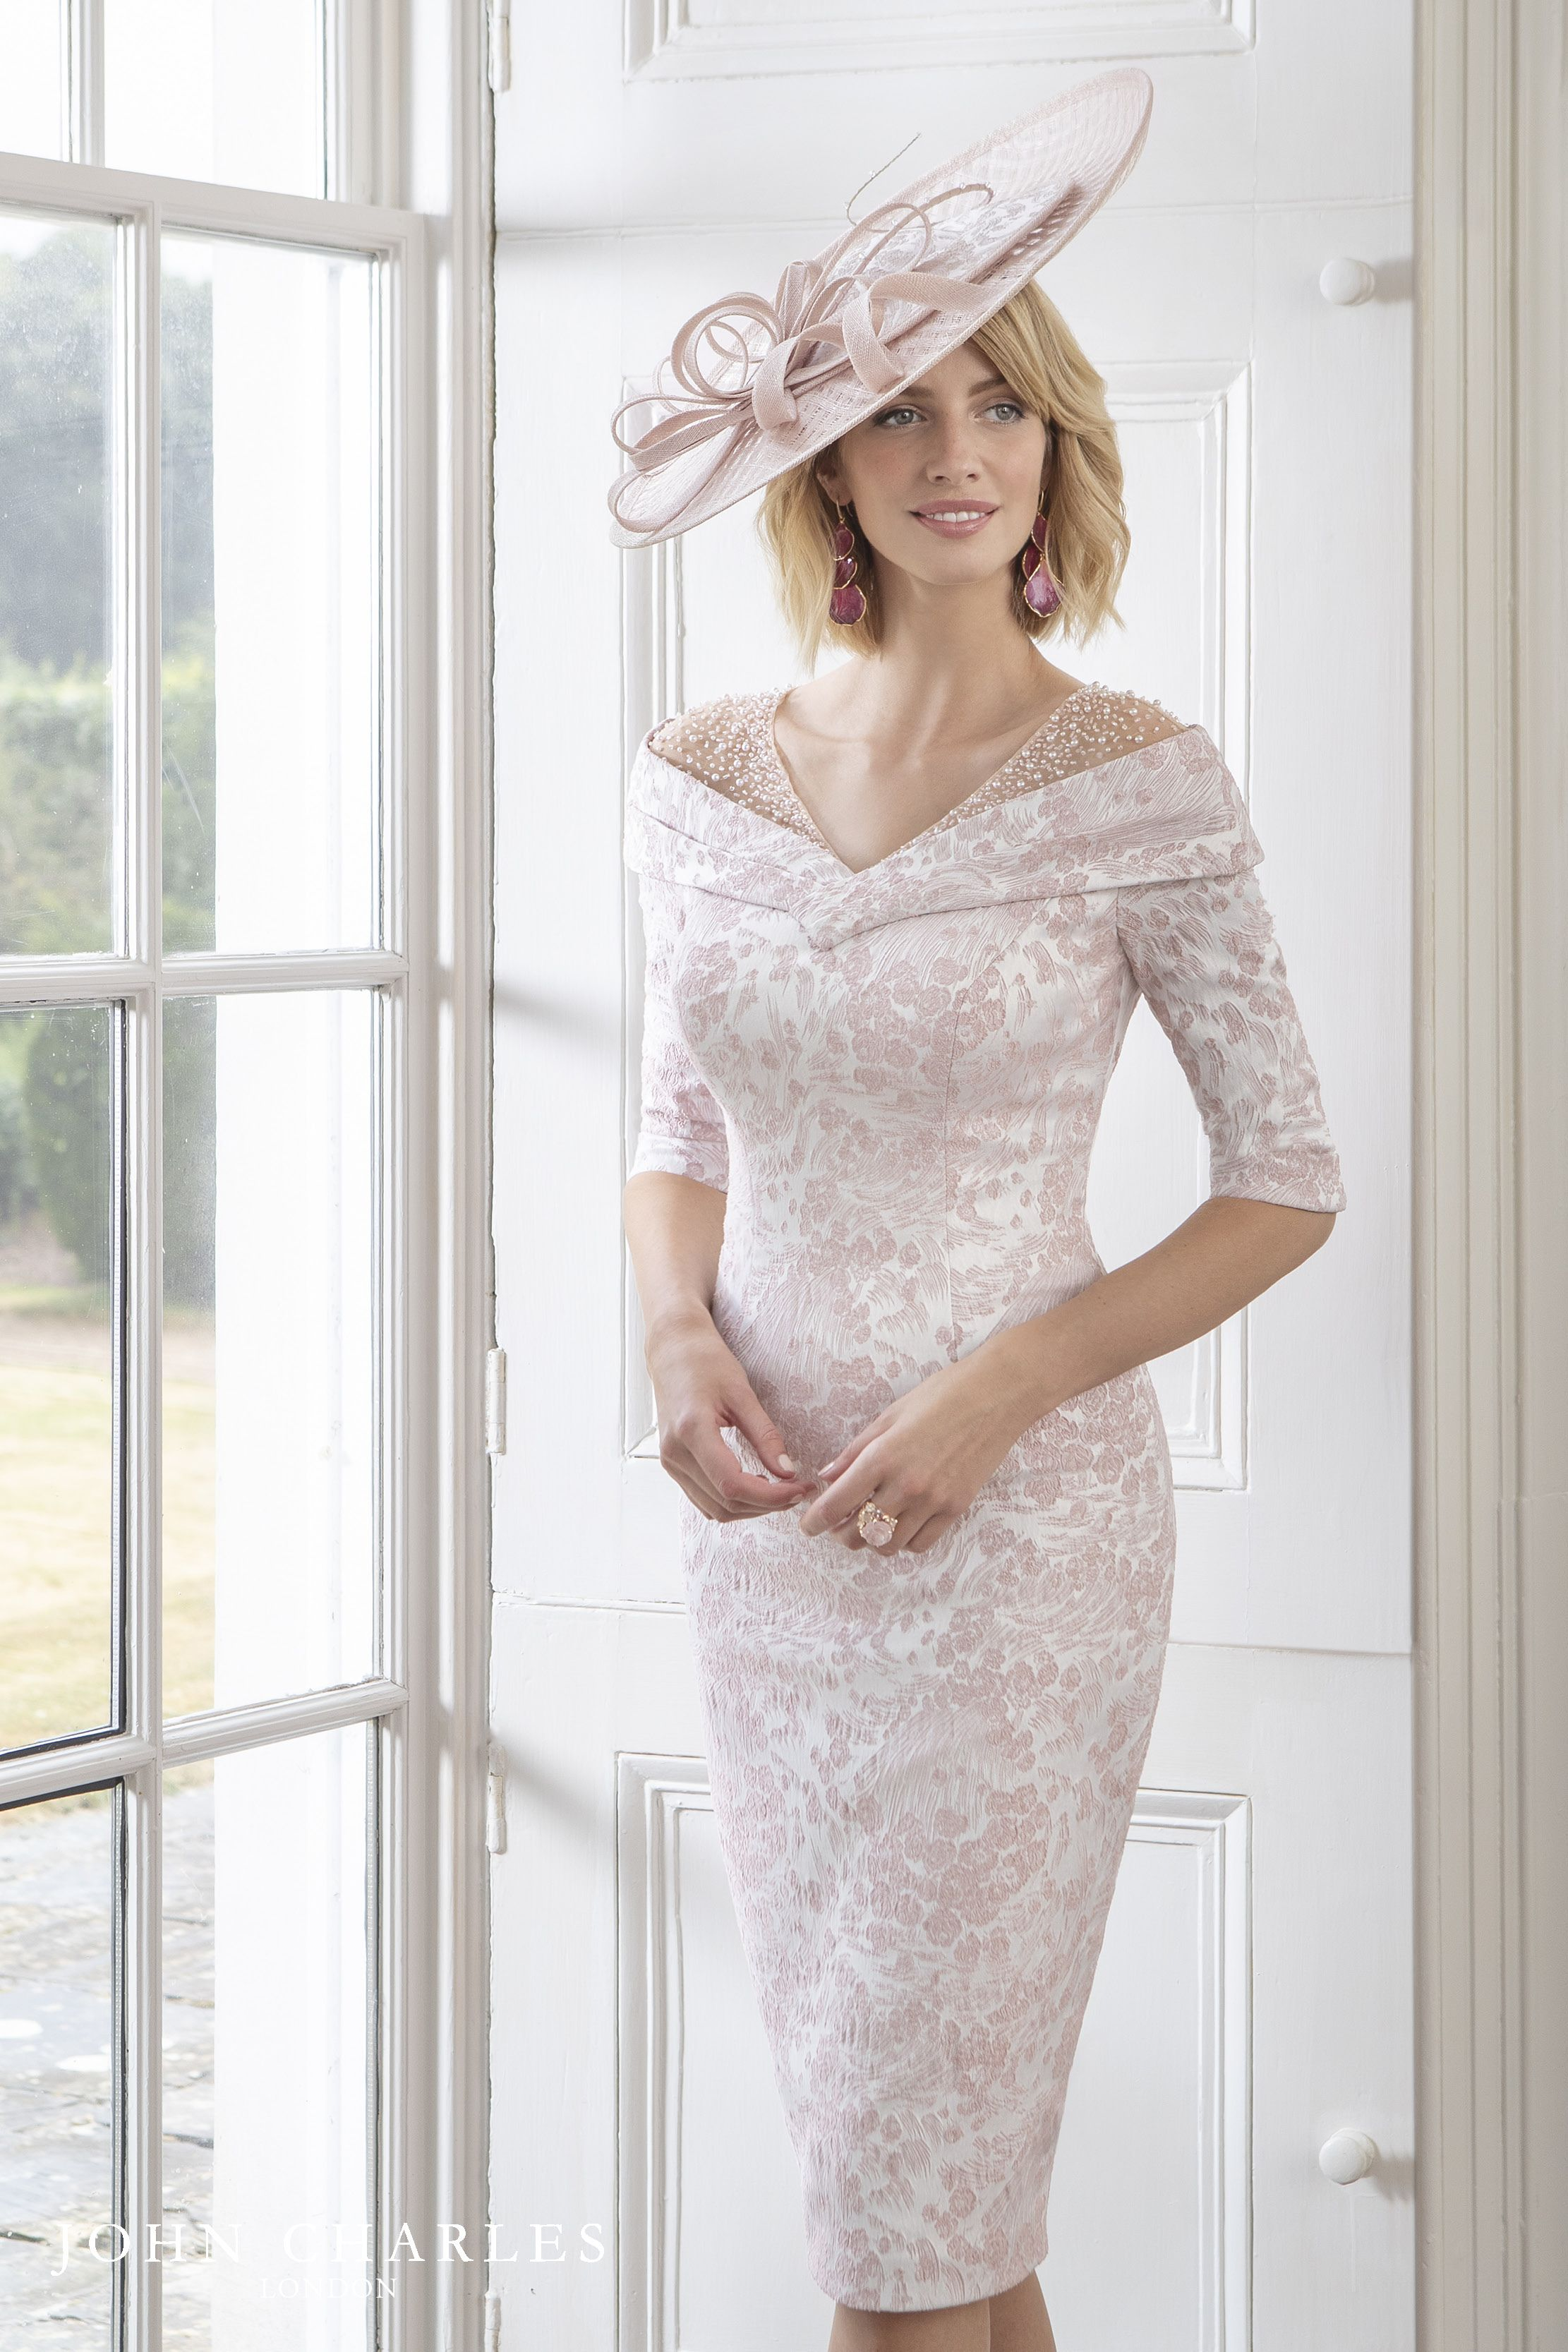 John Charles Spring Summer 2019 Collection Bride Clothes Mother Of The Bride Outfit Bride Dress